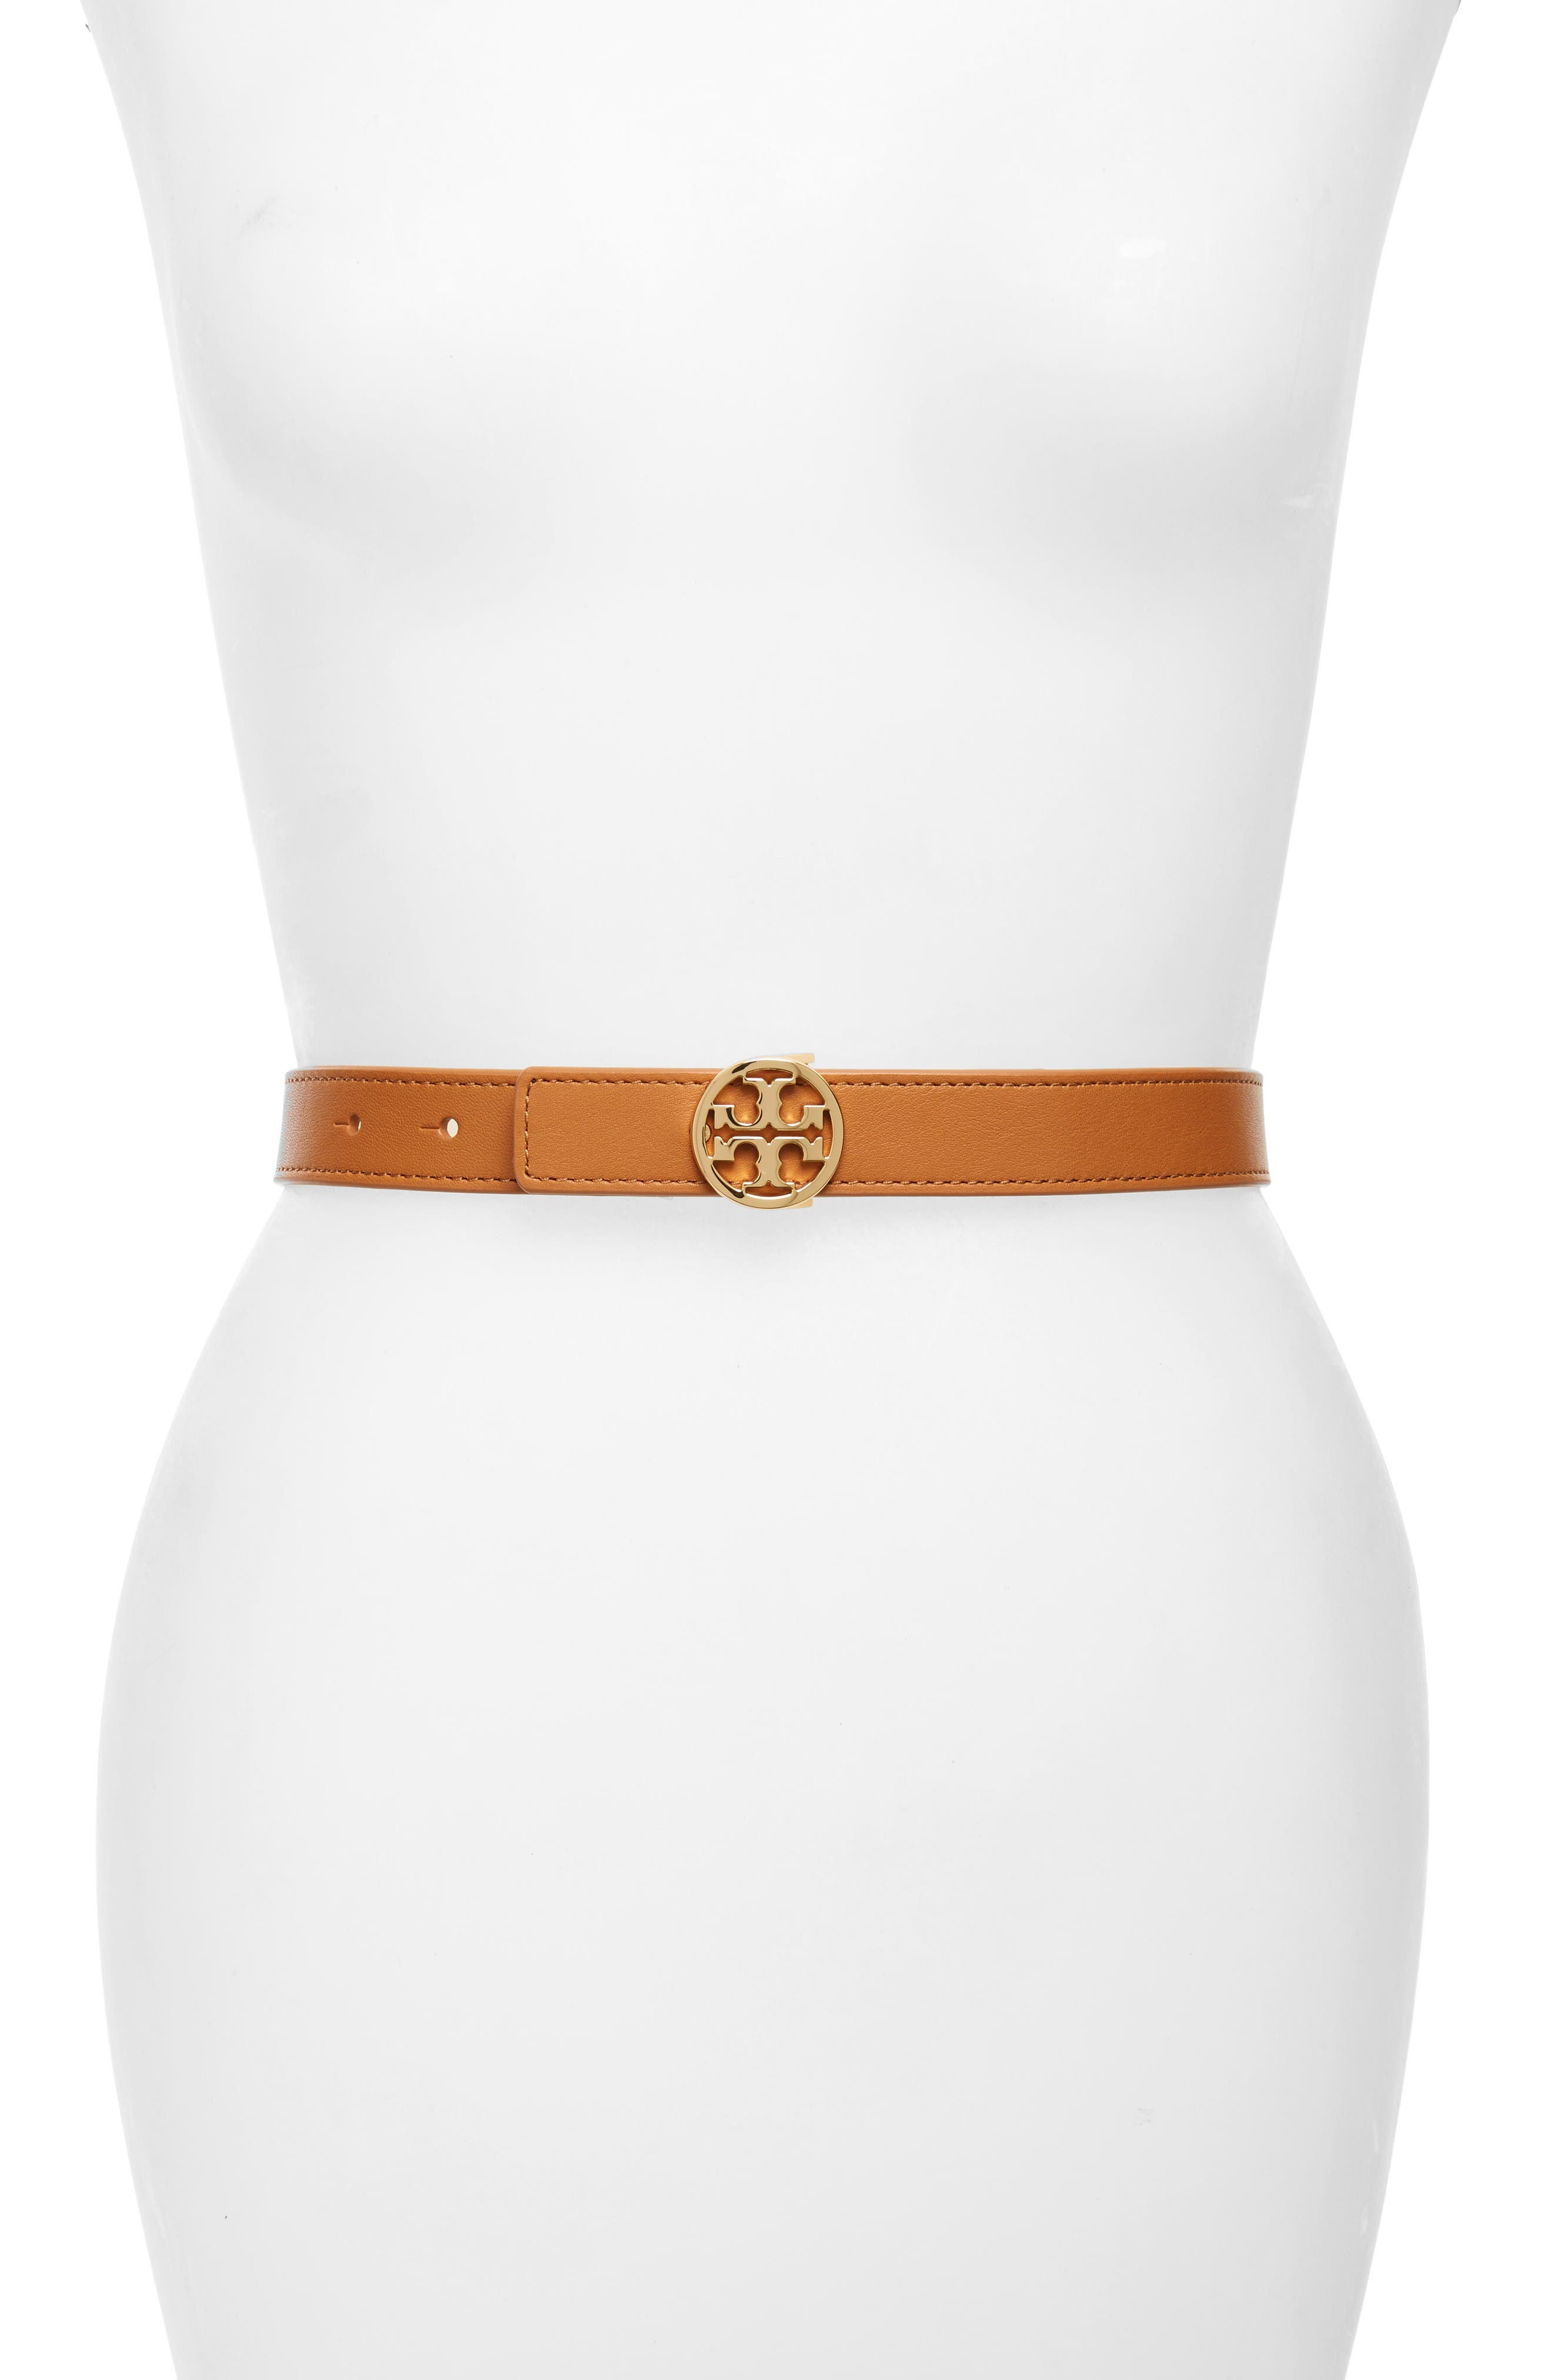 TORY BURCH Reversible Leather Belt